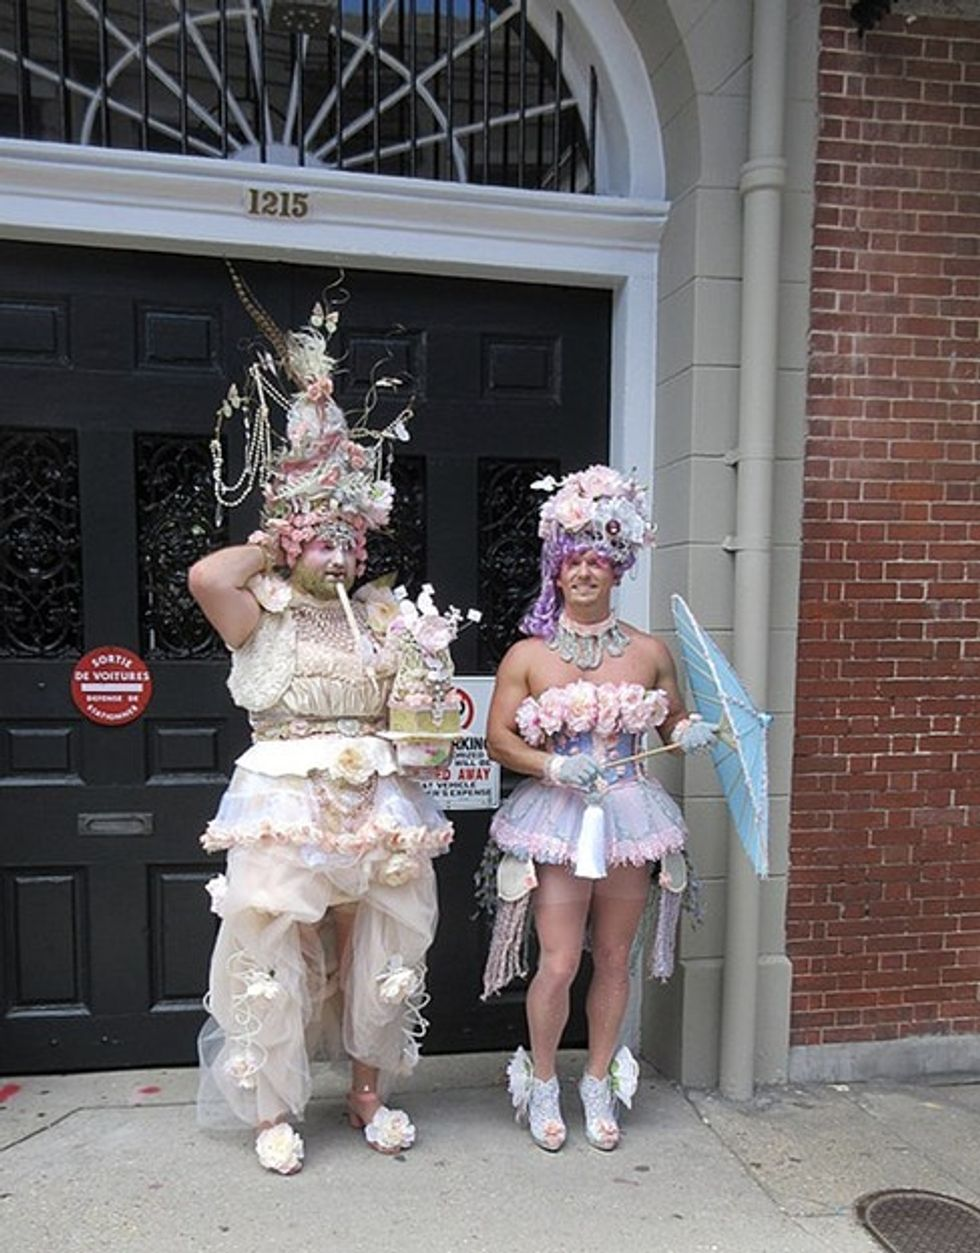 Think NYC Pride is outrageous? Welcome to New Orleans, where 'Southern Decadence' reigns.